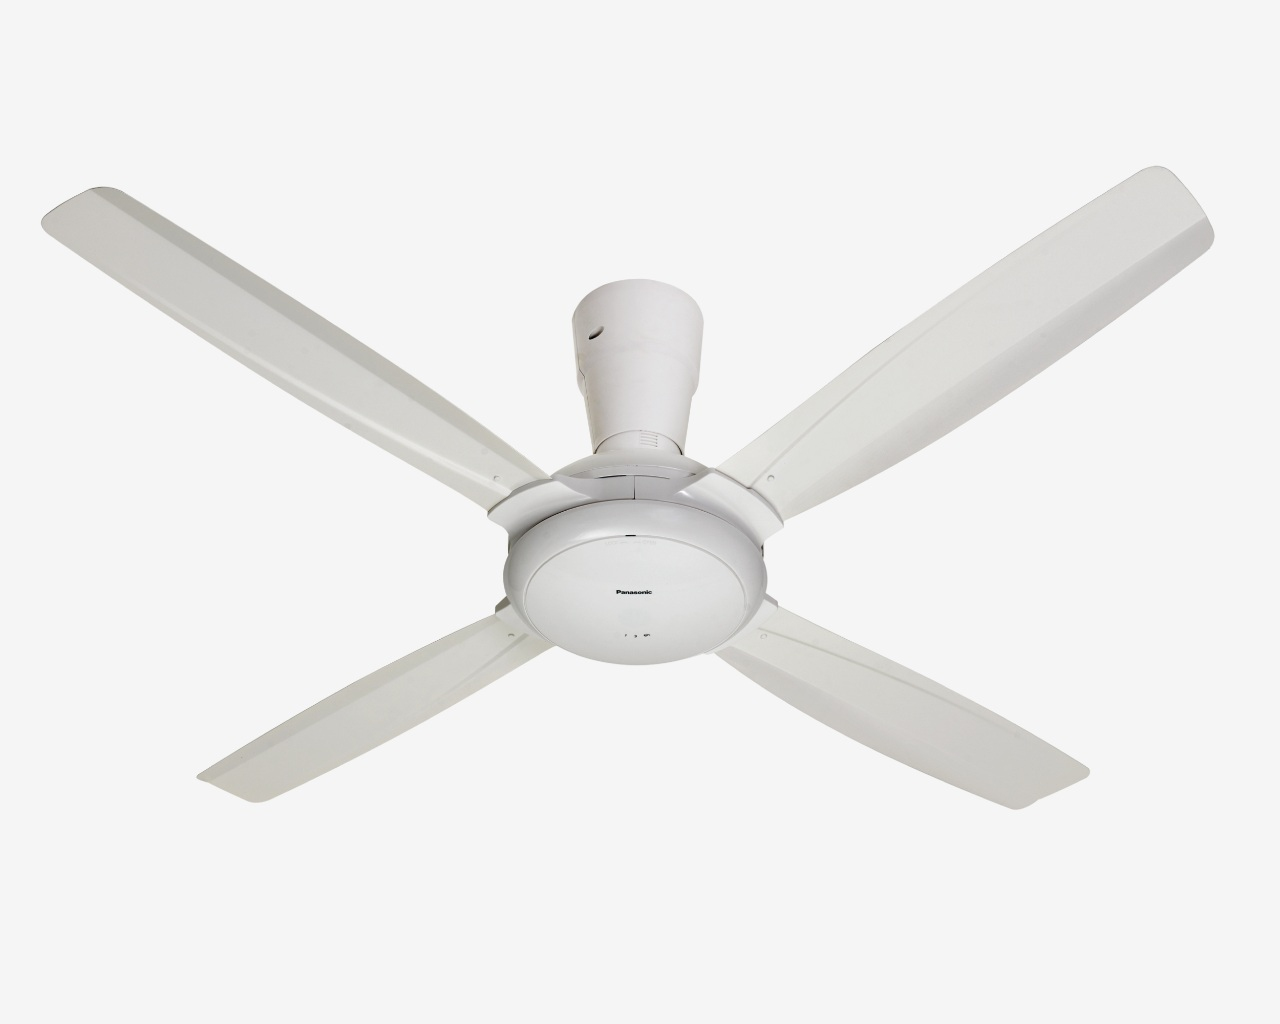 Panasonic 56inch 4 BLADES CEILING FAN (F-M14D5) WHITE